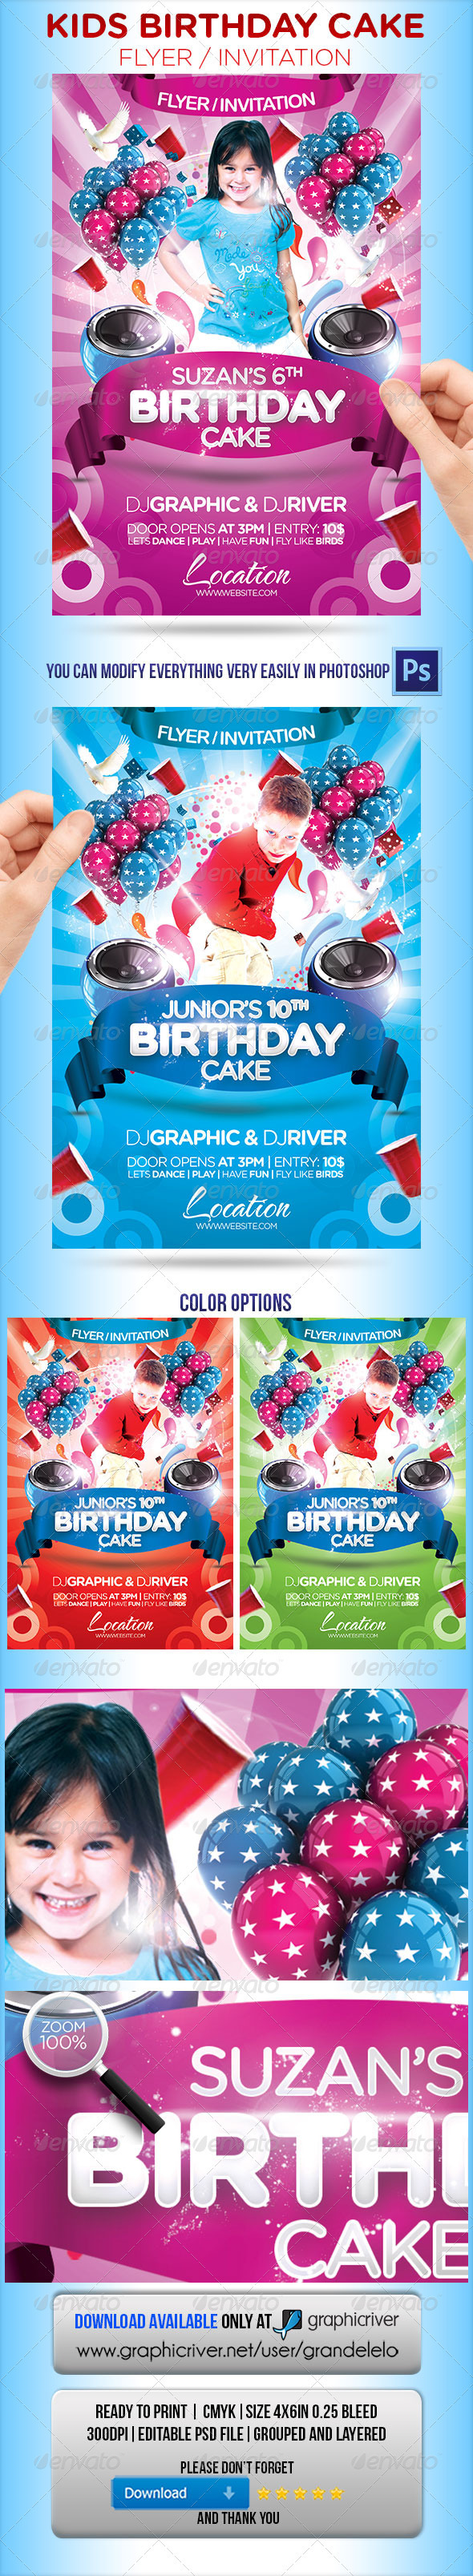 Kids Birthday Cake Flyer Invitation GraphicRiver - Print Templates ...